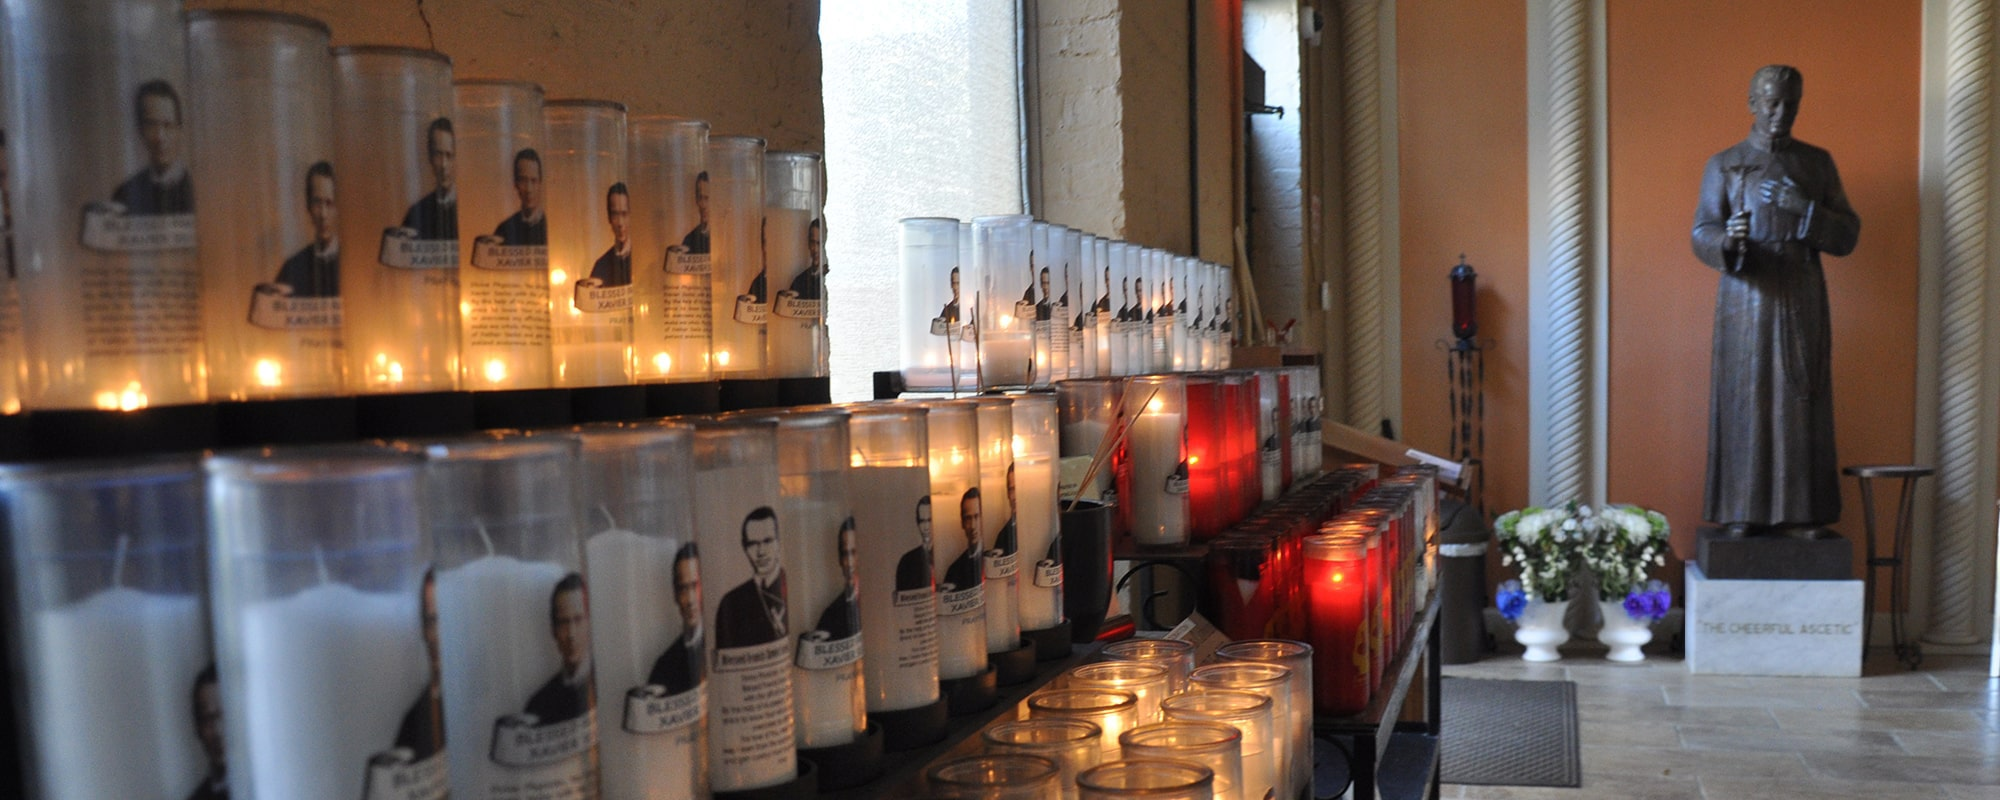 Seelos Shrine votive candles